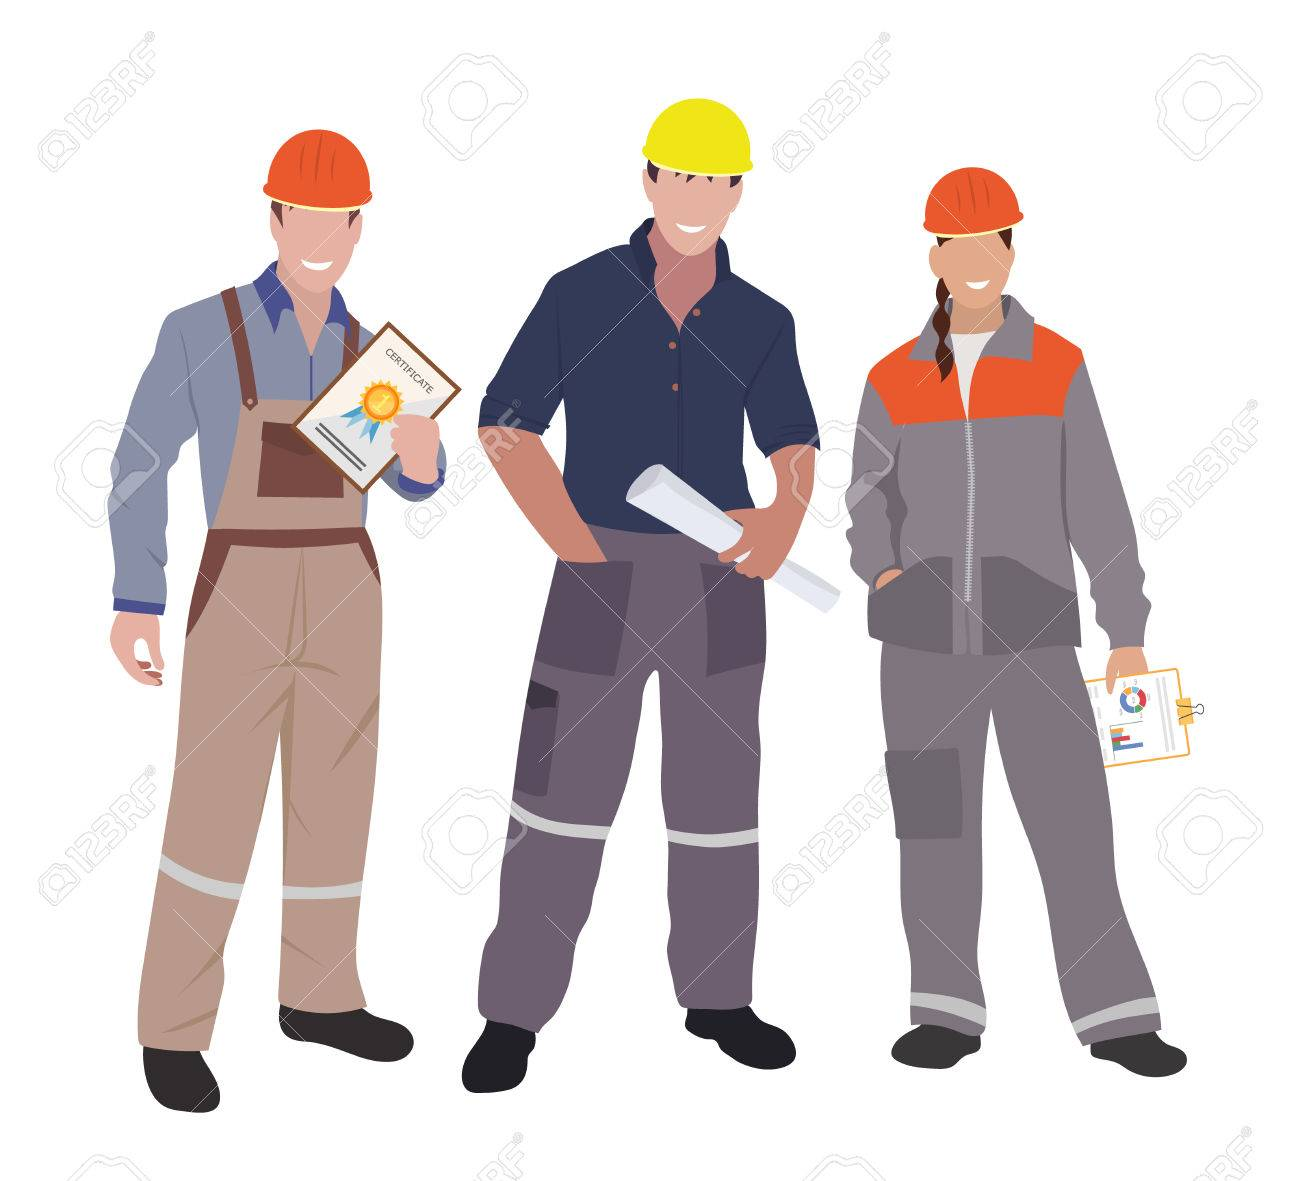 civil engineer, architect and construction workers characters